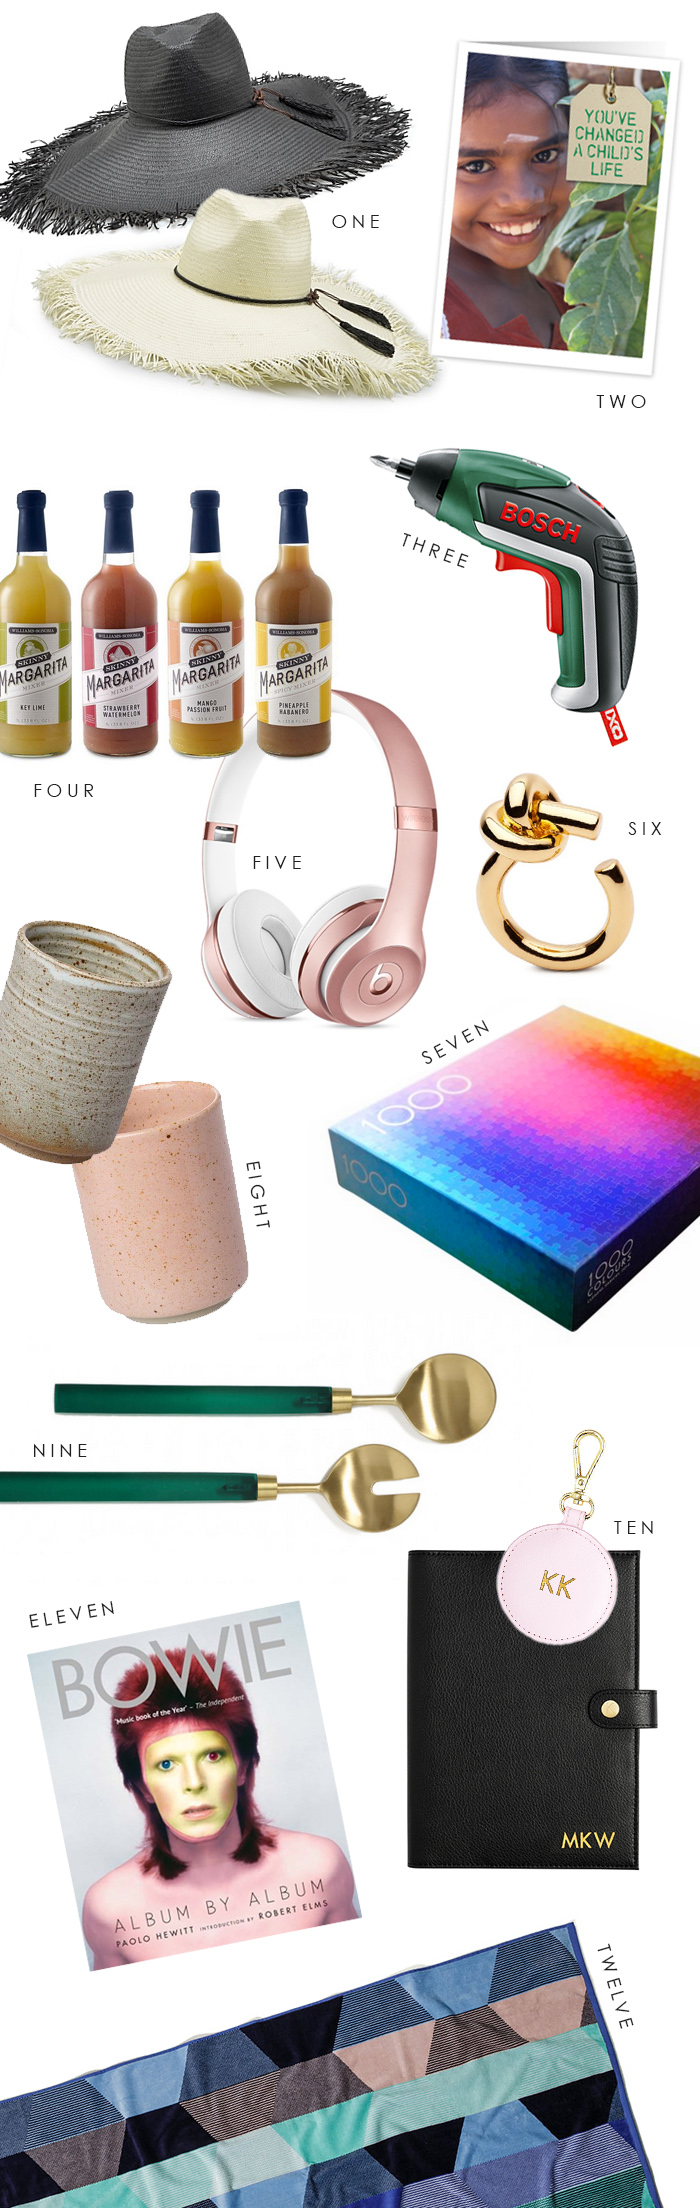 Last minute Christmas gift guide. !0 things to buy online or in store that you may not have thought of.